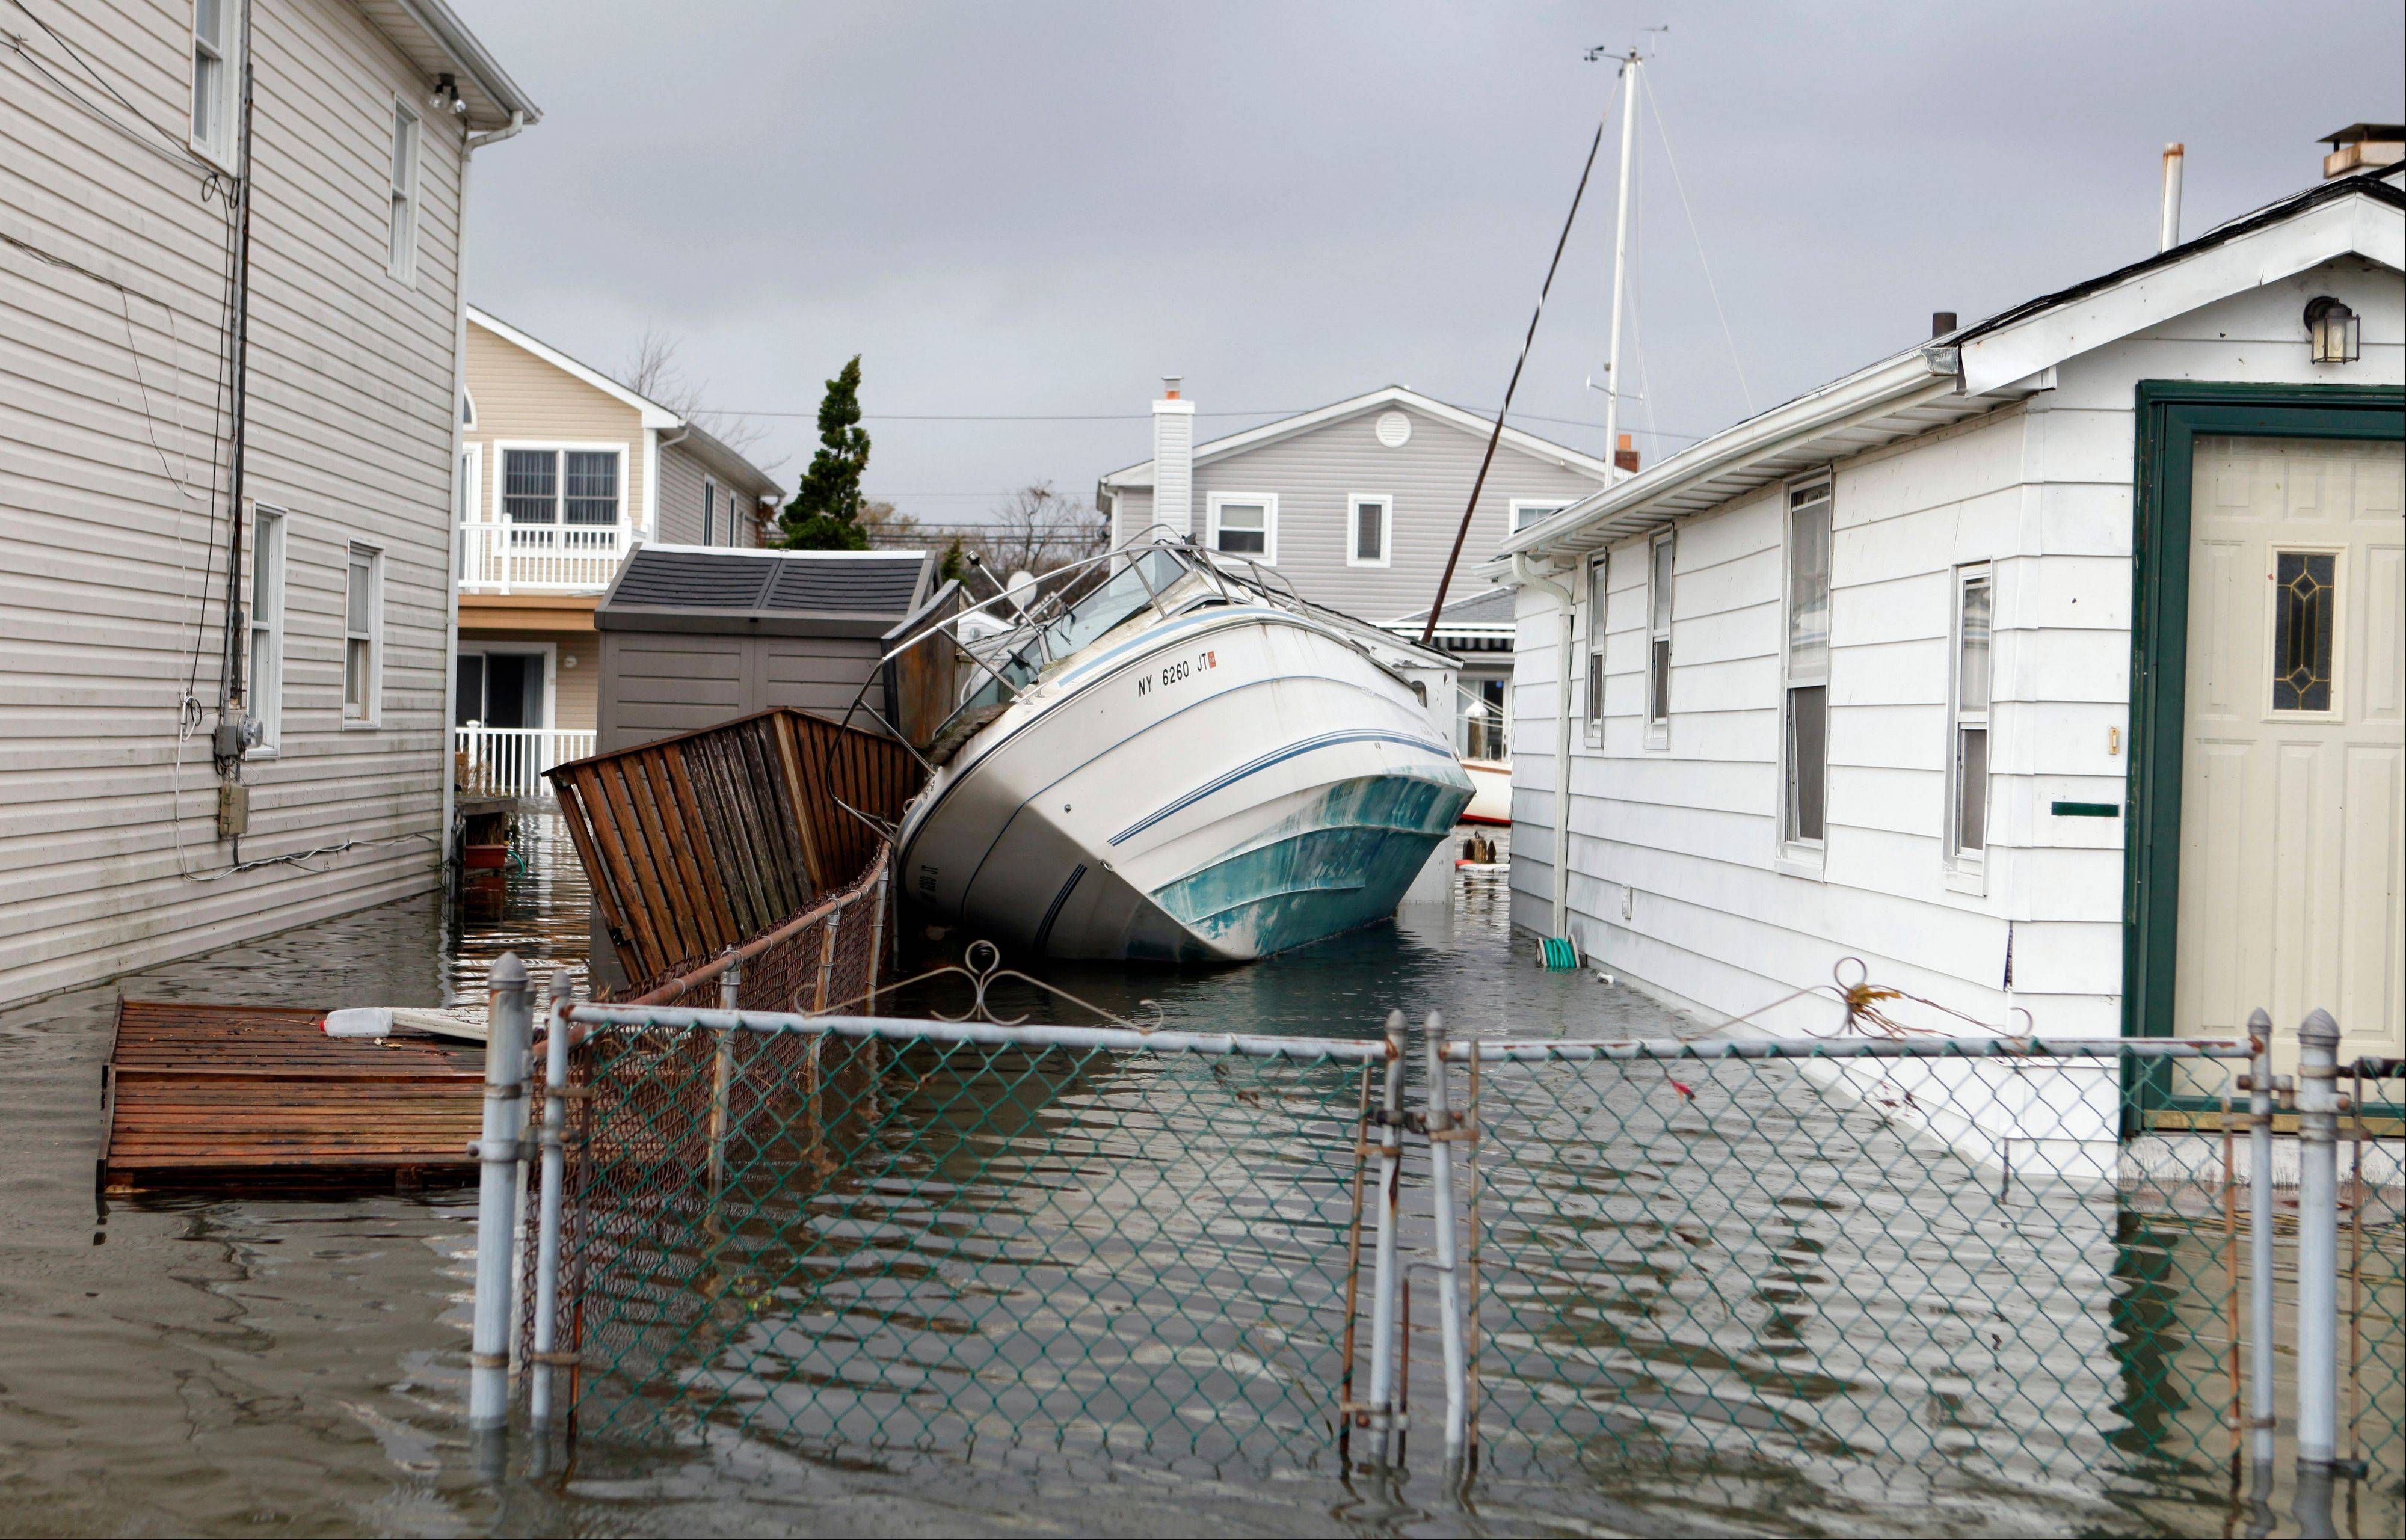 A boat lies toppled between two flooded houses in the aftermath of superstorm Sandy, Tuesday, Oct. 30, 2012, in Lindenhurst, N.Y.